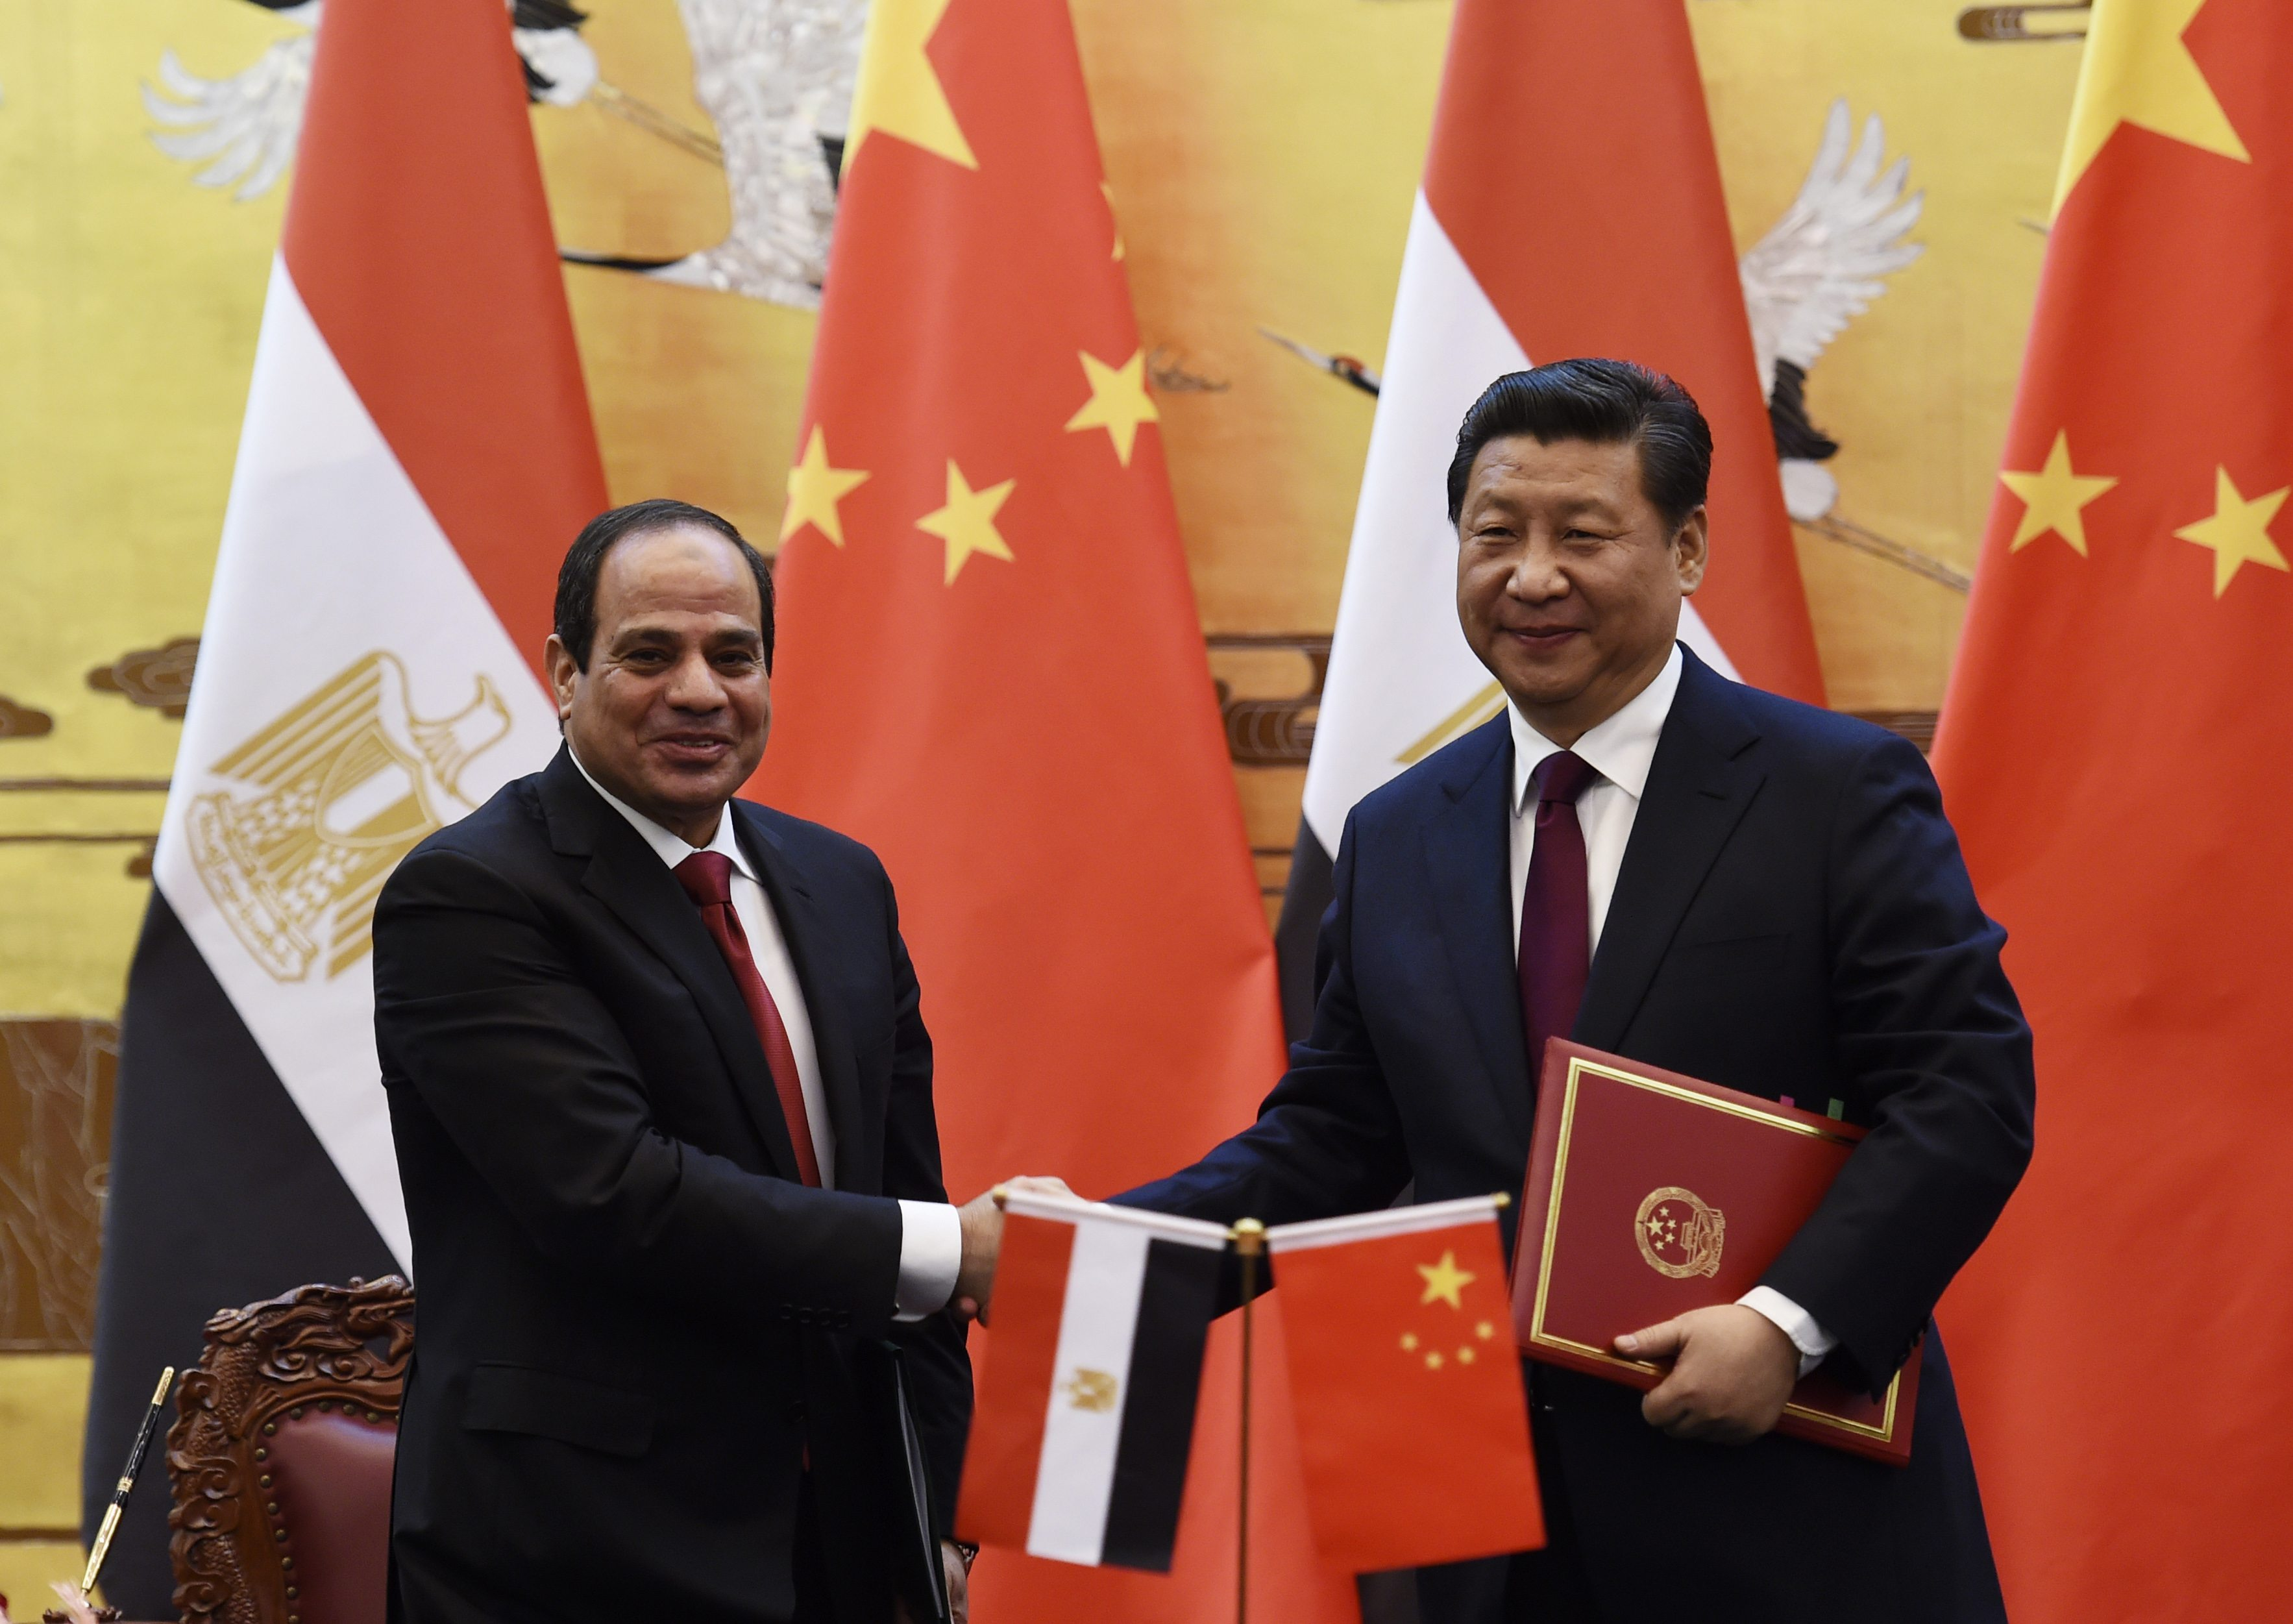 Egypt's President Abdel Fattah al-Sisi (L) shakes hands with Chinese President Xi Jinping during a signing ceremony in the Great Hall of the People in Beijing December 23, 2014.   REUTERS/Greg Baker/Pool   (CHINA - Tags: POLITICS)